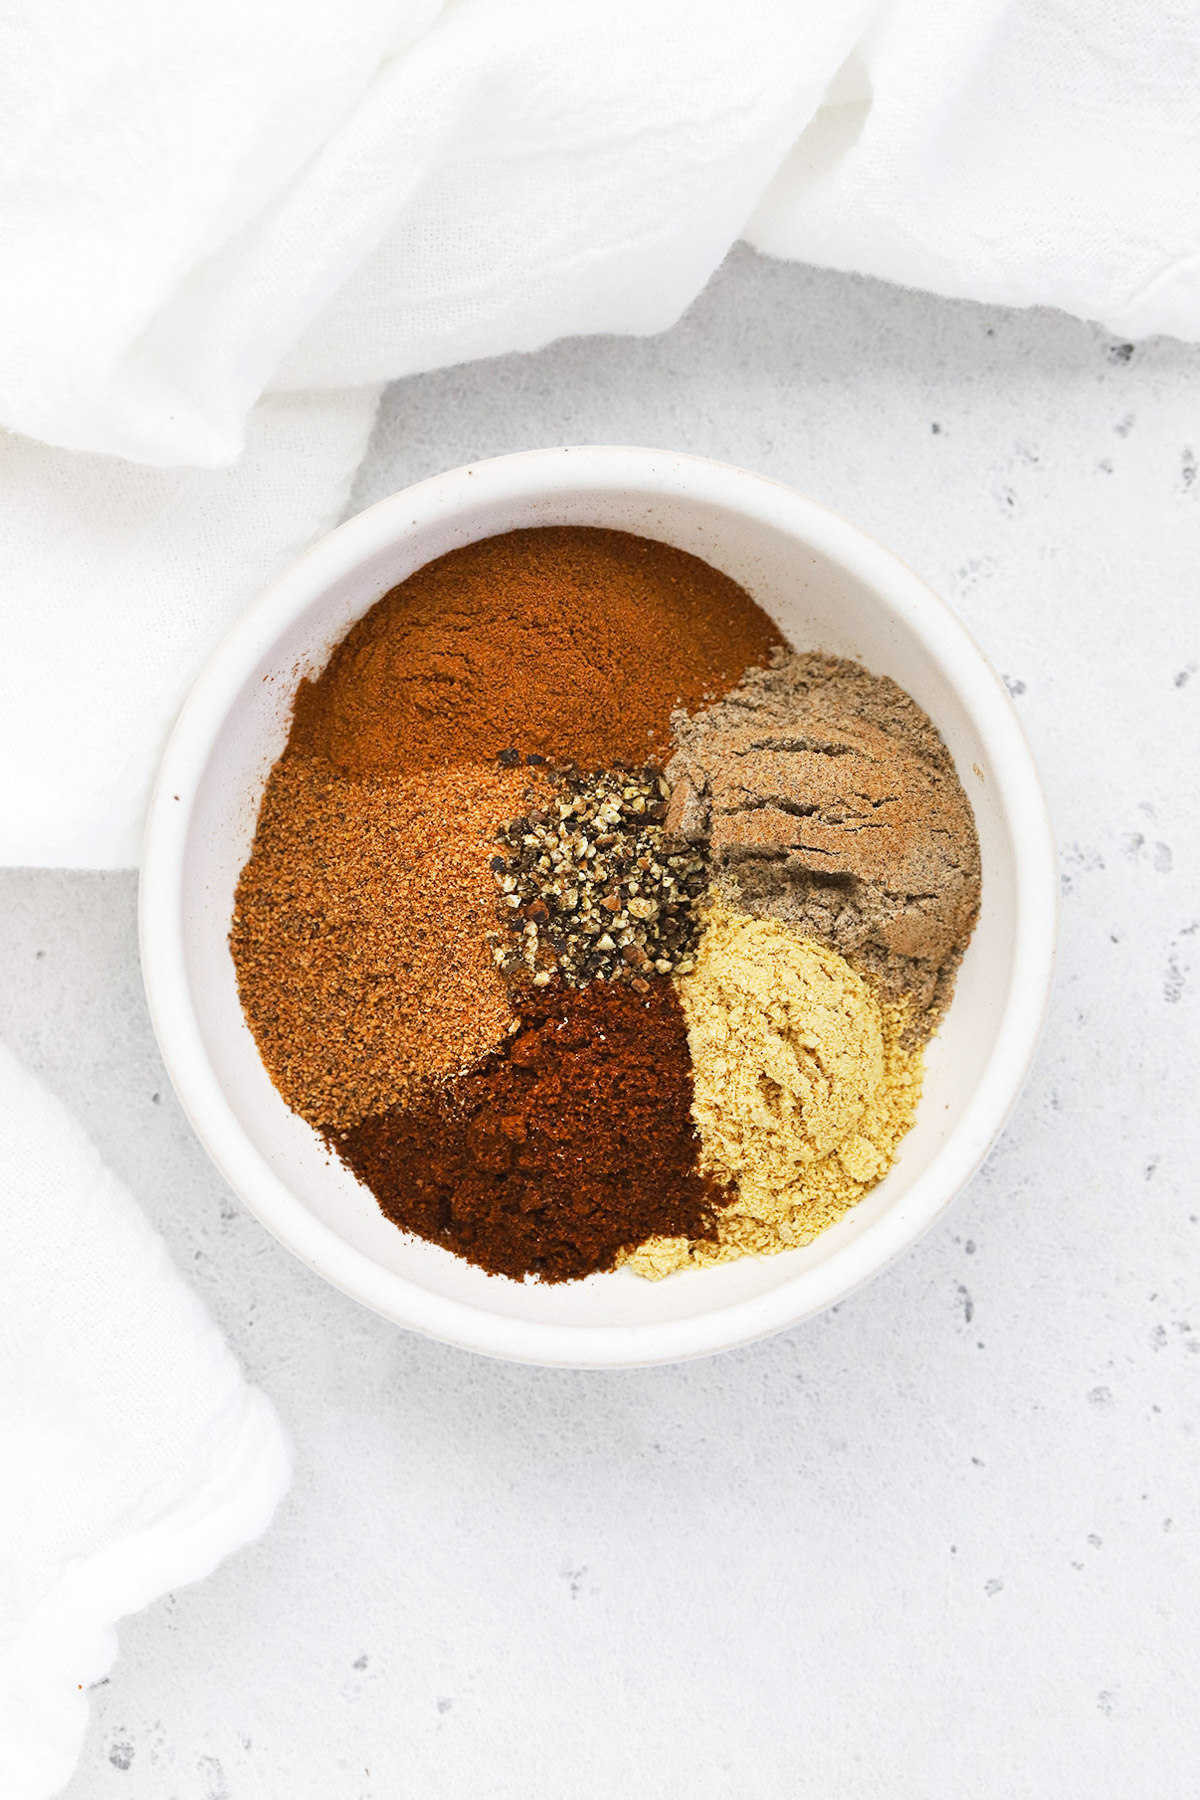 Overhead view of a bowl of homemade chai spice mix from scratch